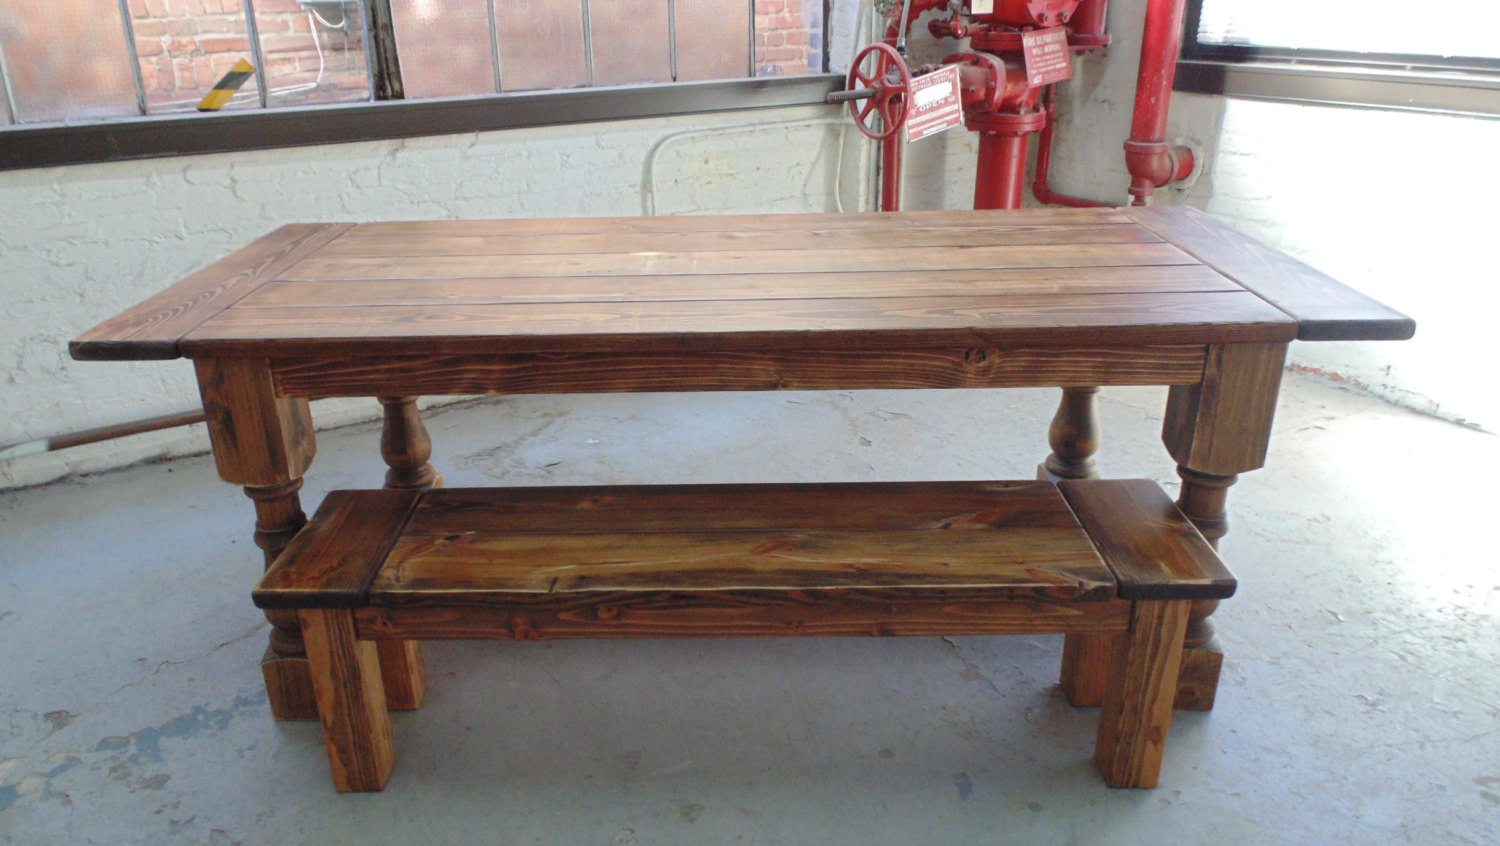 Talbot Dining Table  Farmhouse  Reclaimed Wood  Custom  Handcrafted   Handmade  Made  Talbot Dining Table  Farmhouse  Reclaimed Wood  Custom  . Farmhouse Dining Table Made In Usa. Home Design Ideas